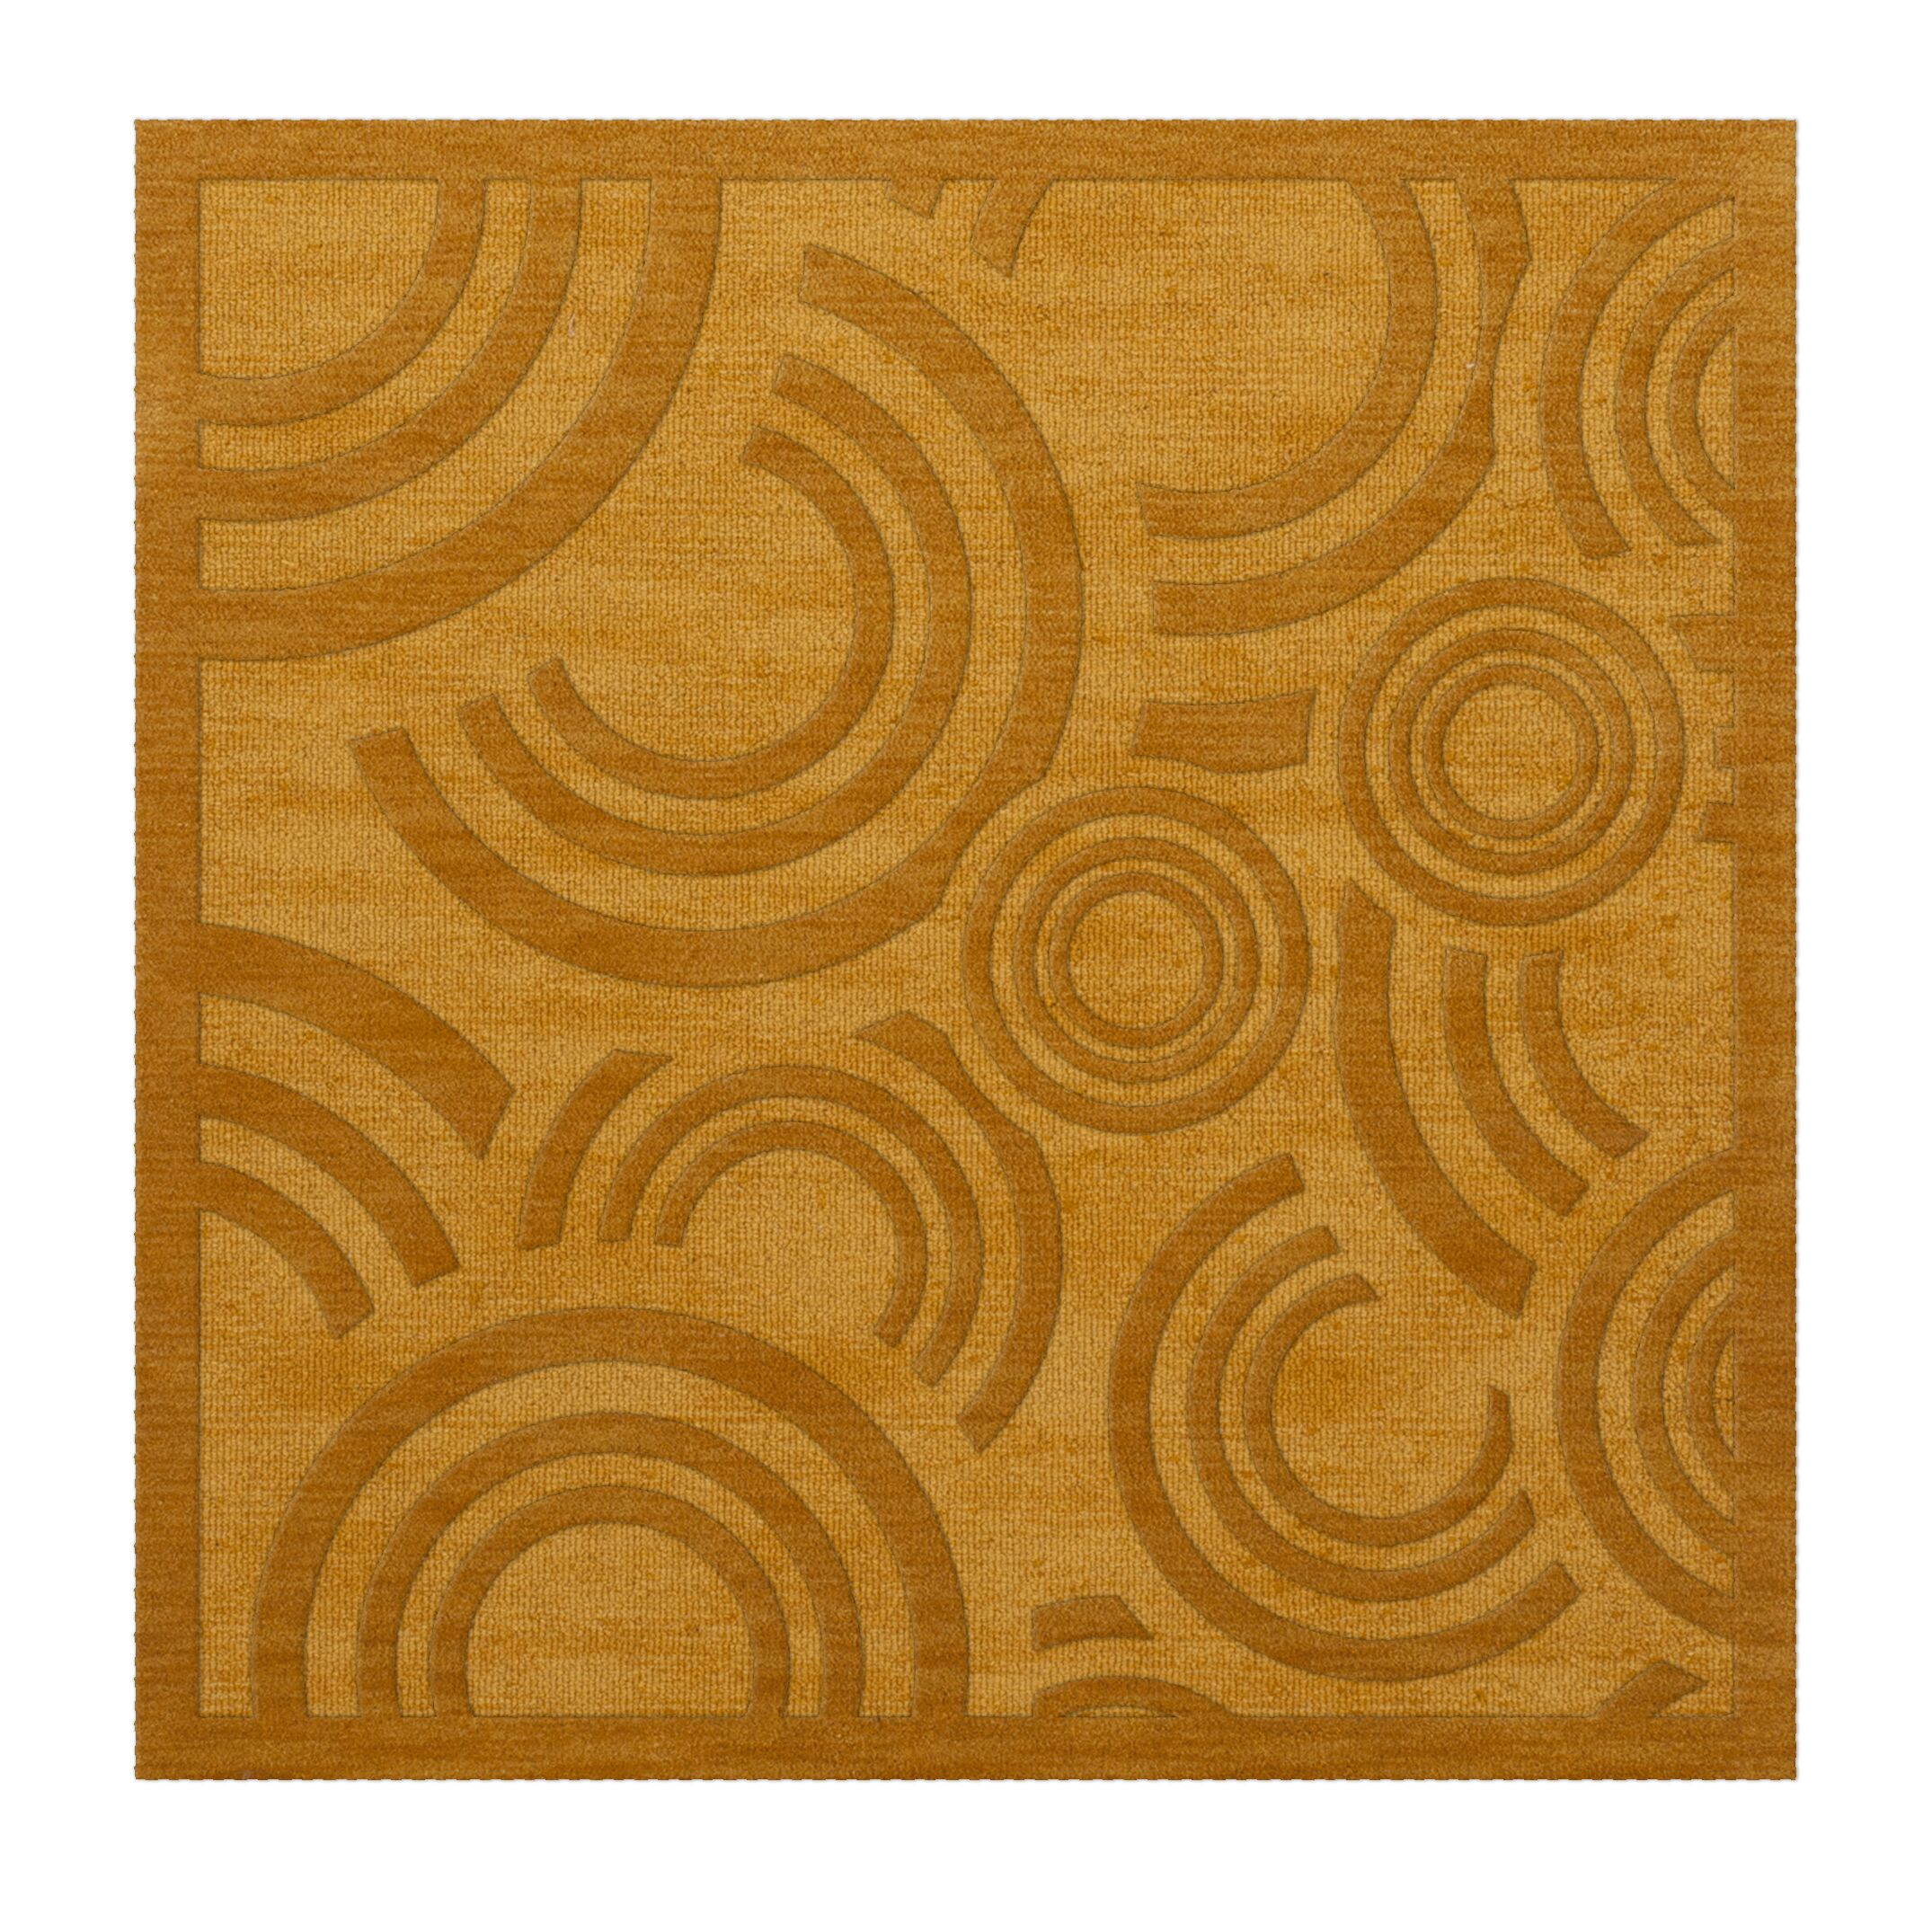 Dover Tufted Wool Butterscotch Area Rug Rug Size: Square 4'